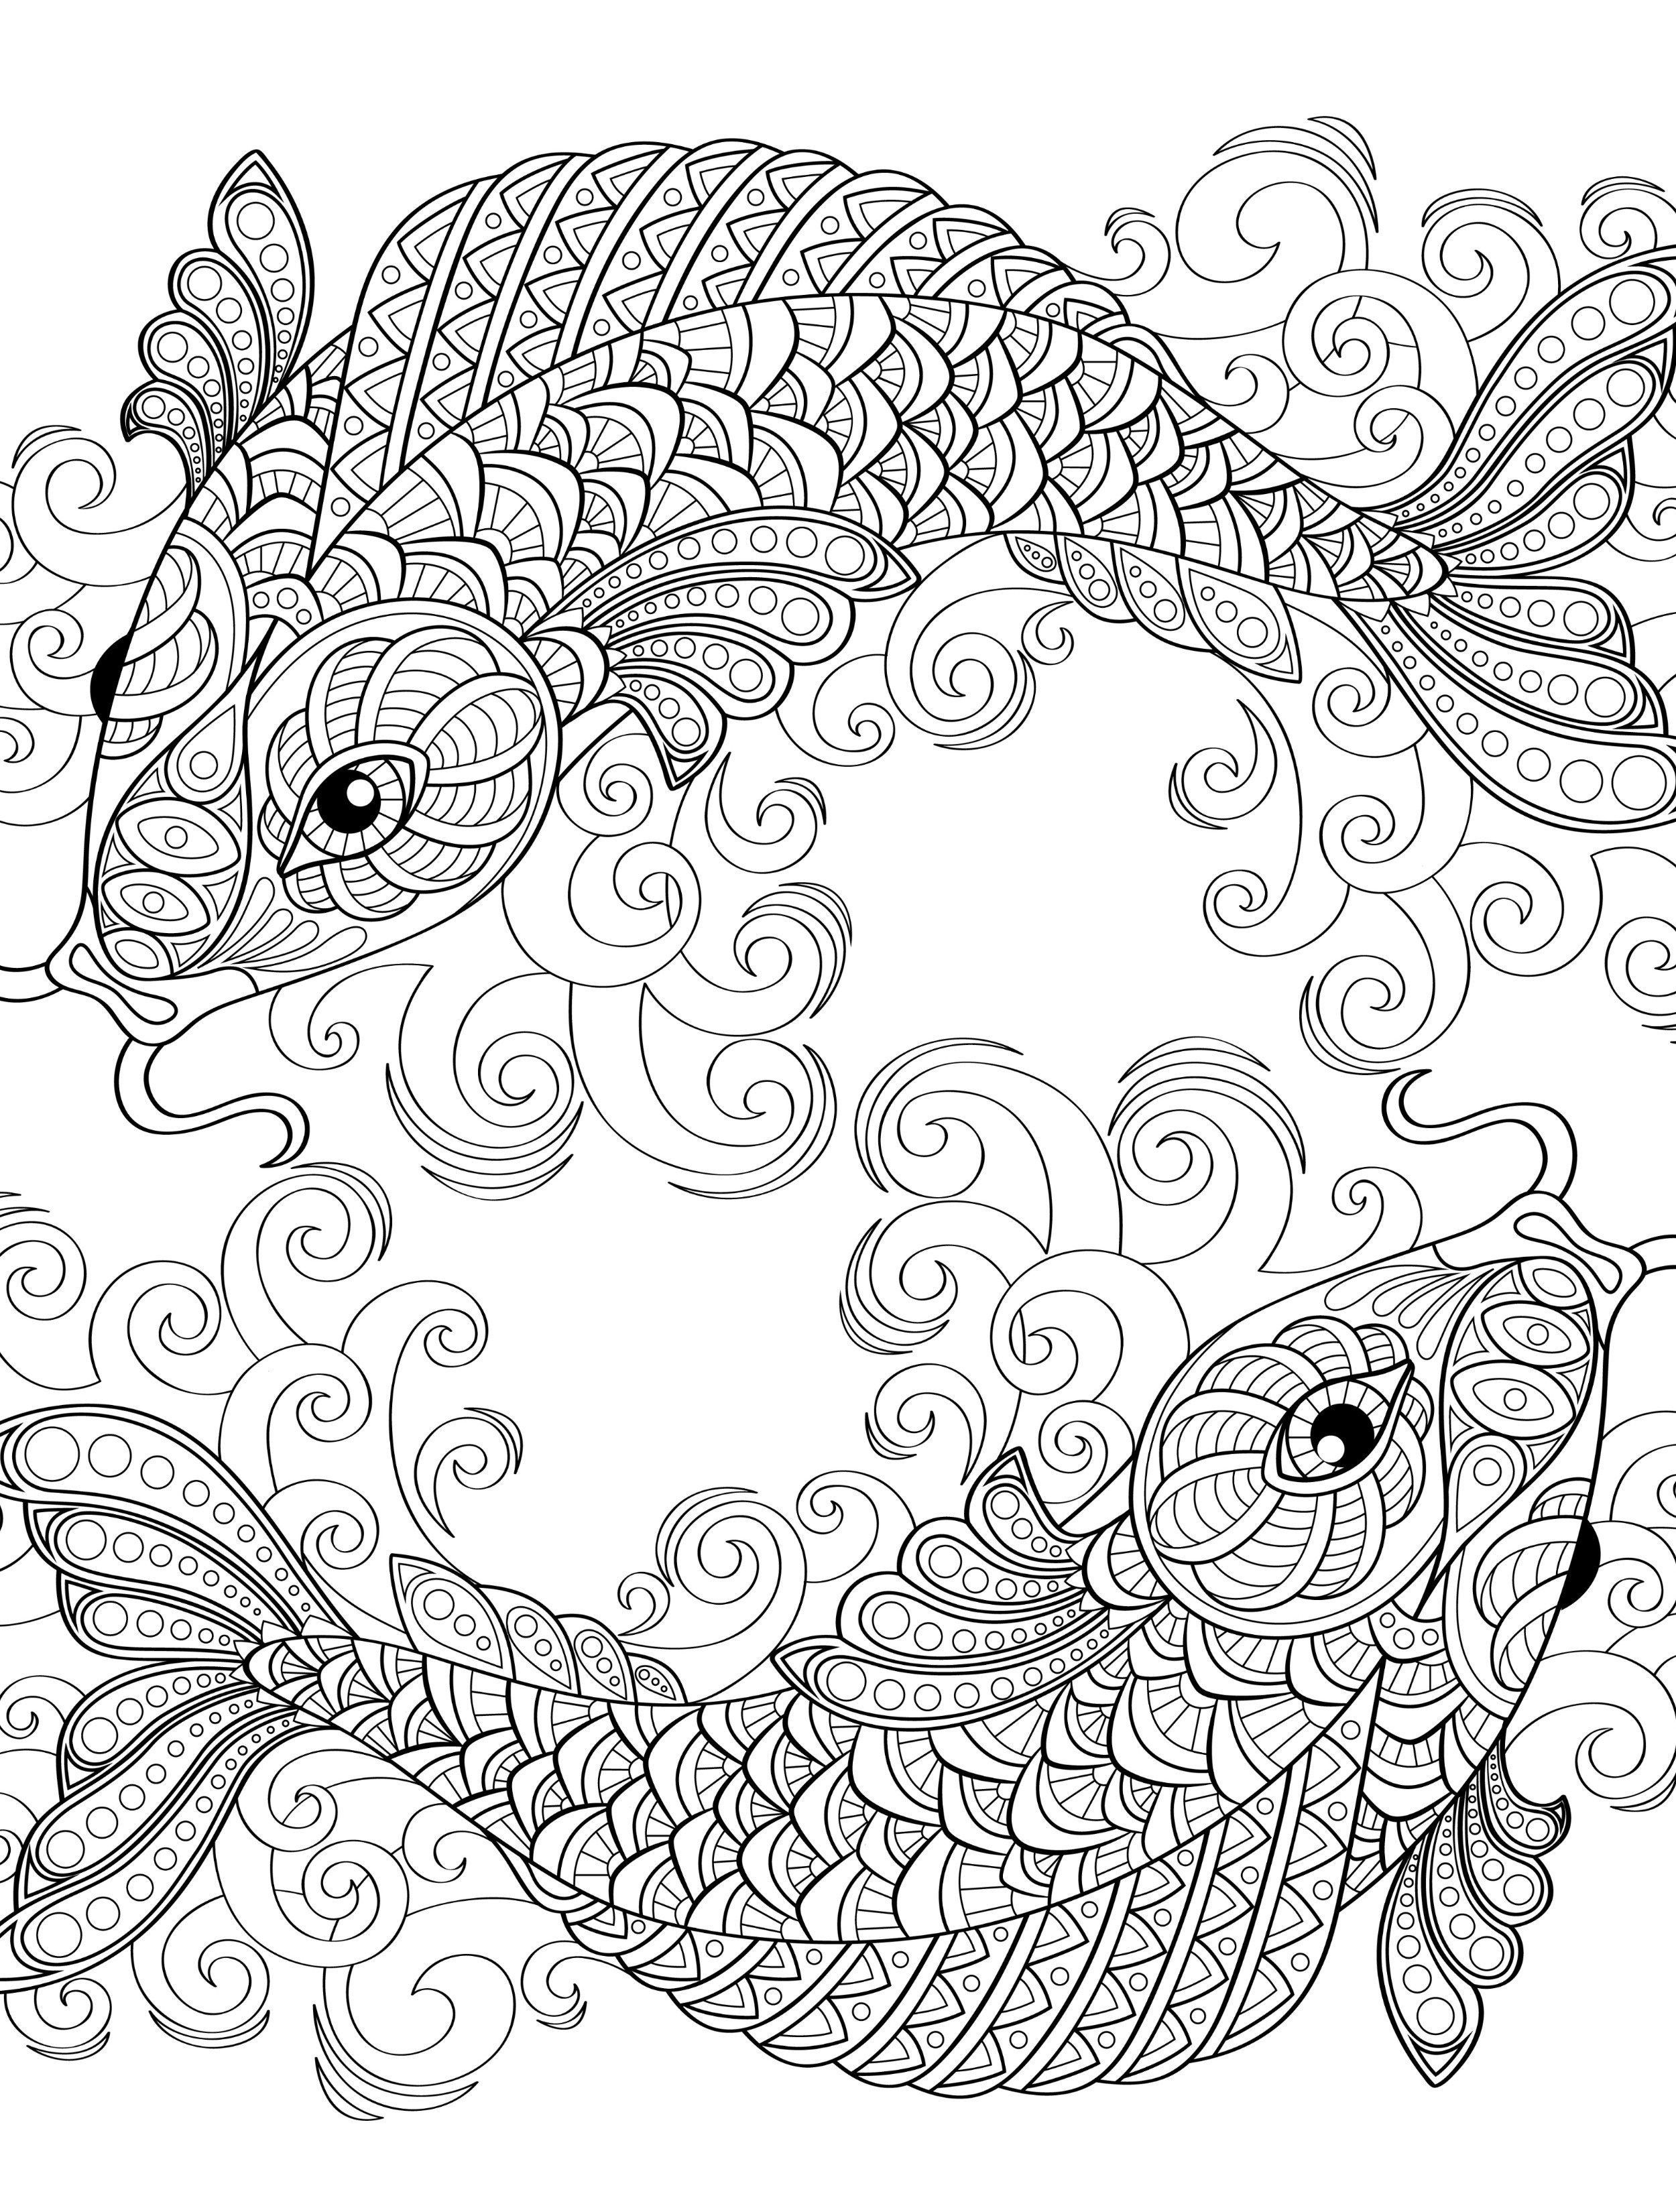 Coloring Pages For Older Adults Best Yin And Yang Pieces Symbol Fish Imagenes Para Colorear Para Adultos Paginas Para Colorear Para Imprimir Mandalas Animales